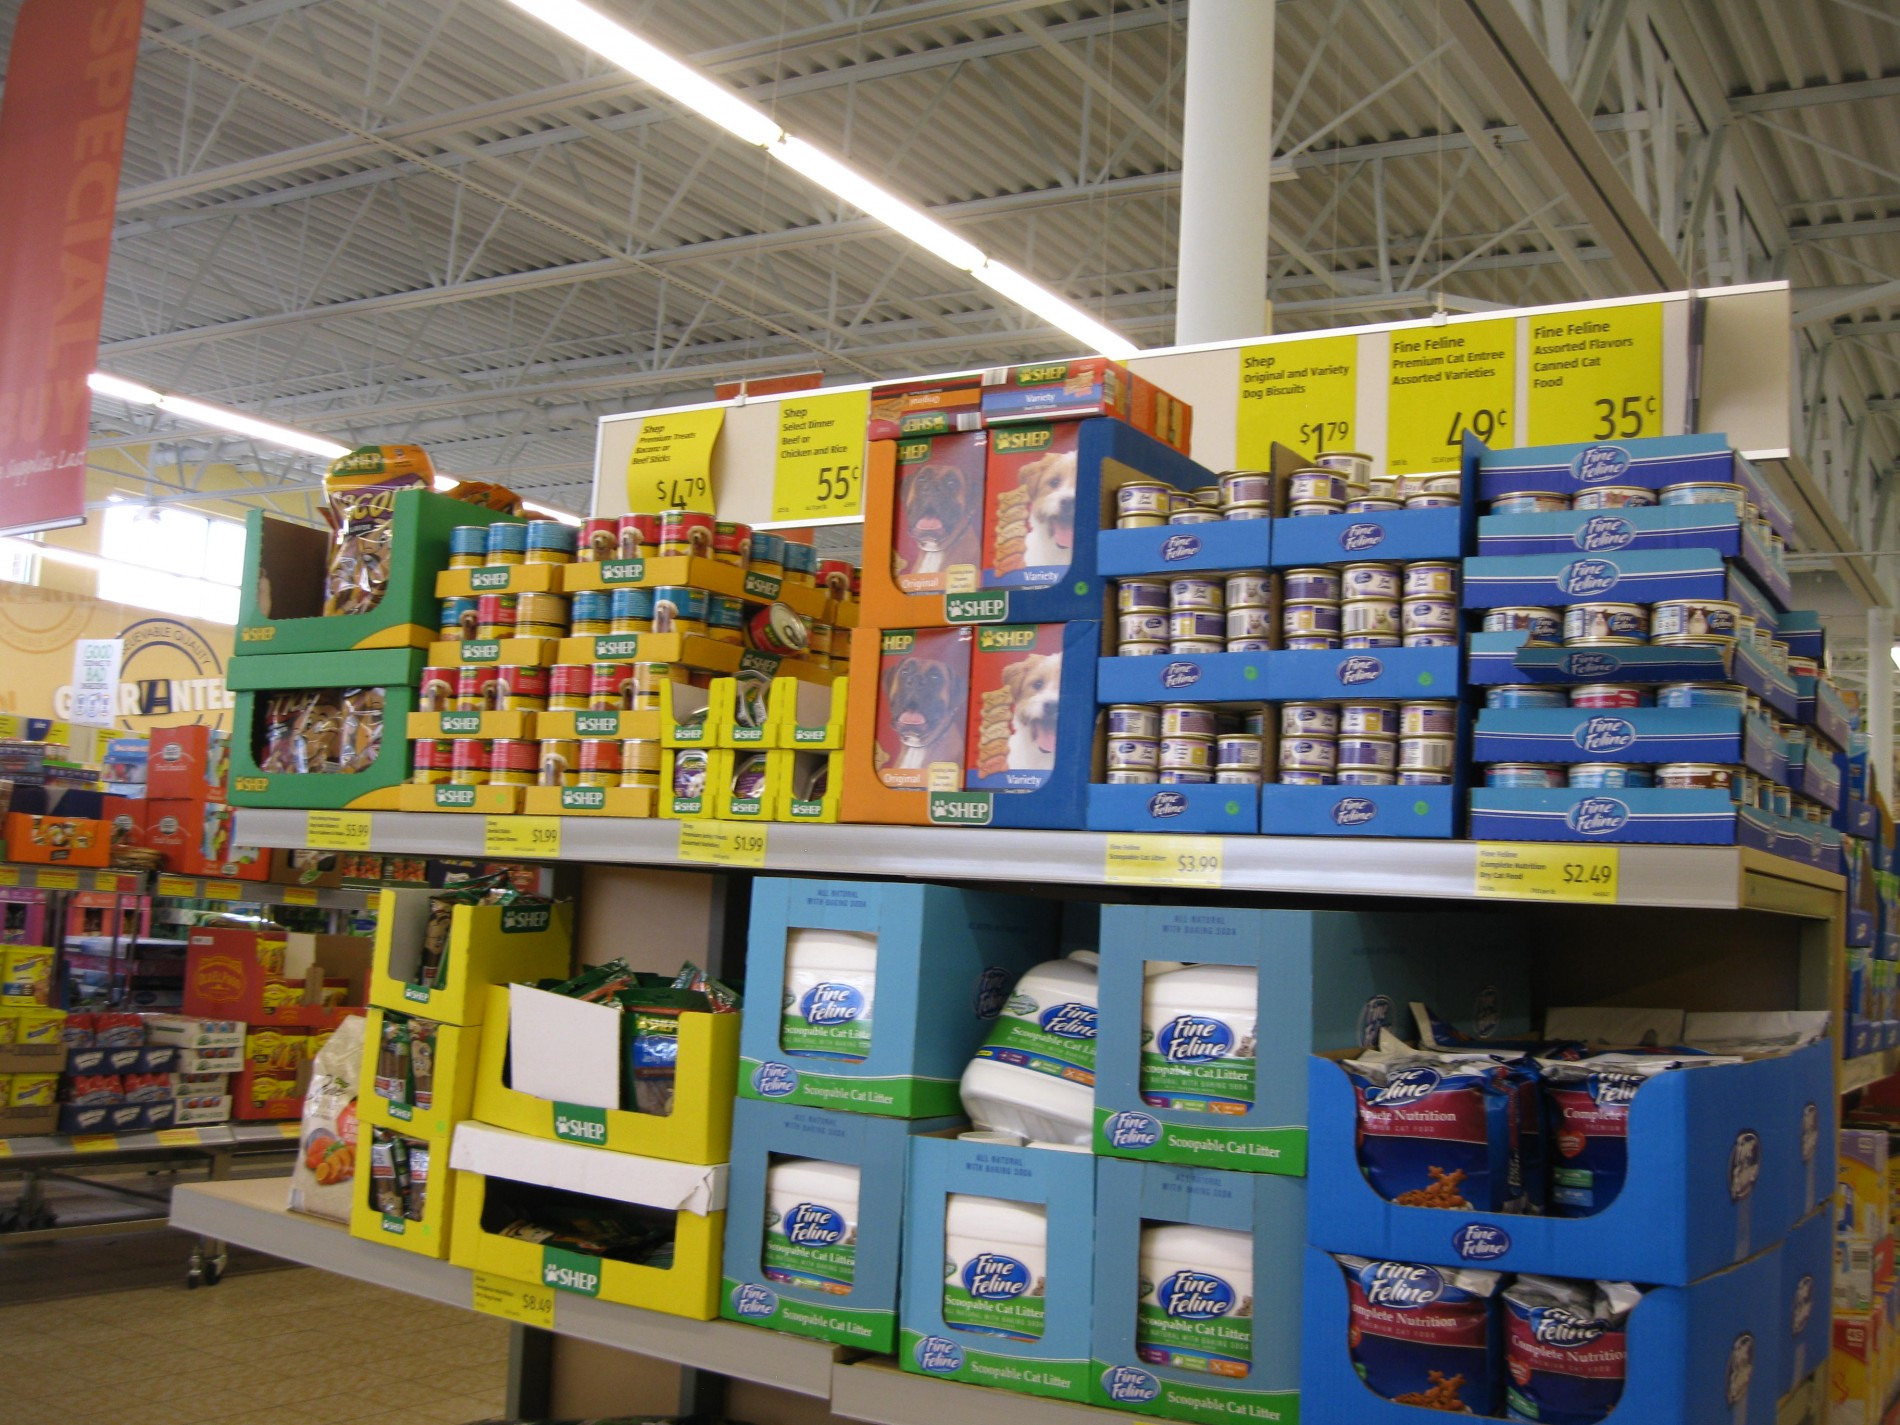 Aldi Food Market, Milford CT 4Mar16 – Ready for Credit Cards